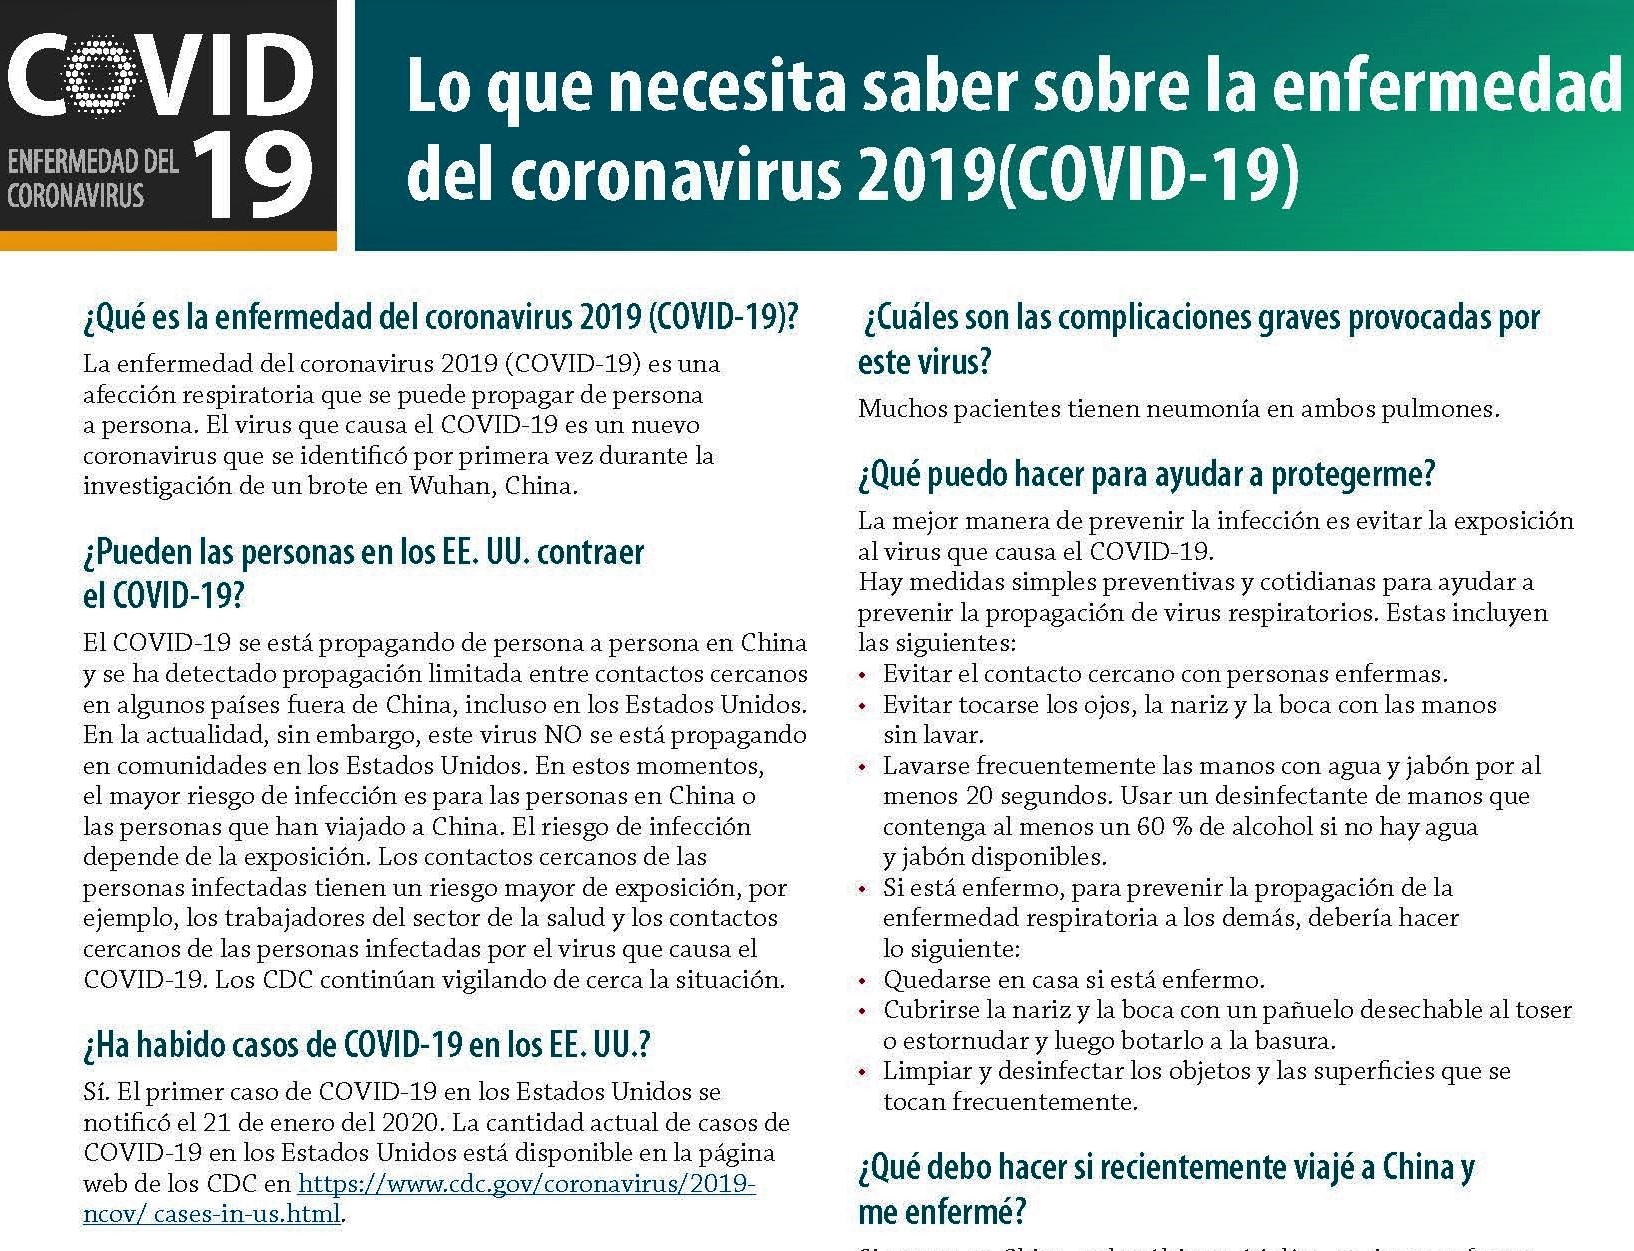 COVID-19 PDFs in Spanish